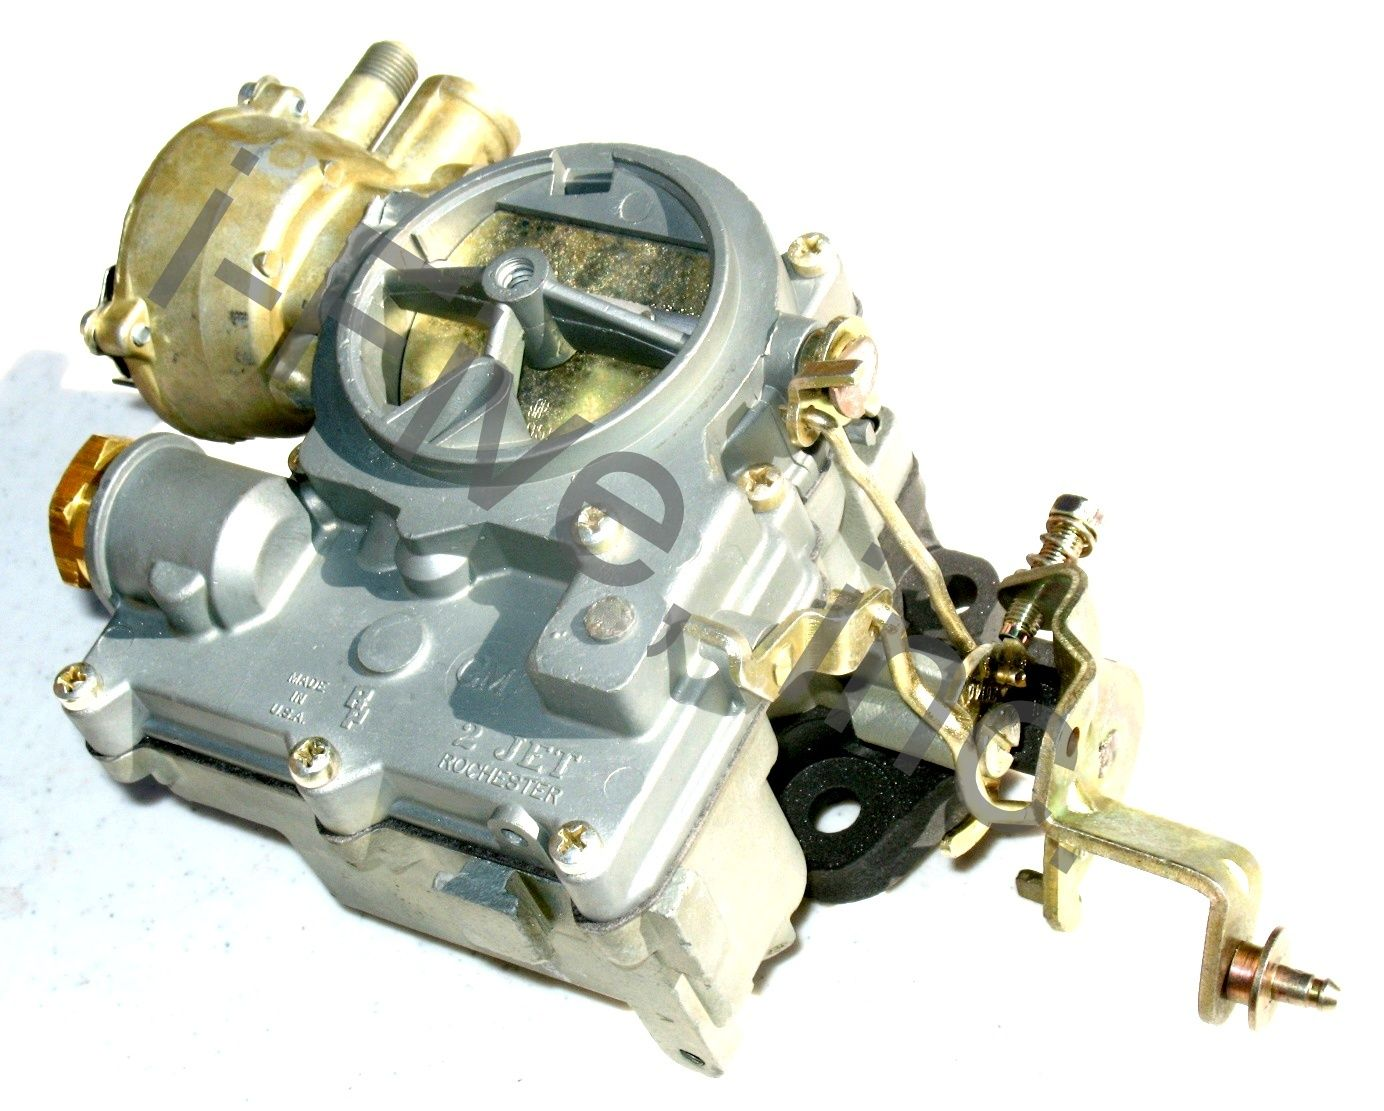 Rochester carburetor for 1966 to 1971 cj5 jeepster commando rochester carburetor for 1966 to 1971 cj5 jeepster commando kaiser dauntless 225 v6 sciox Image collections